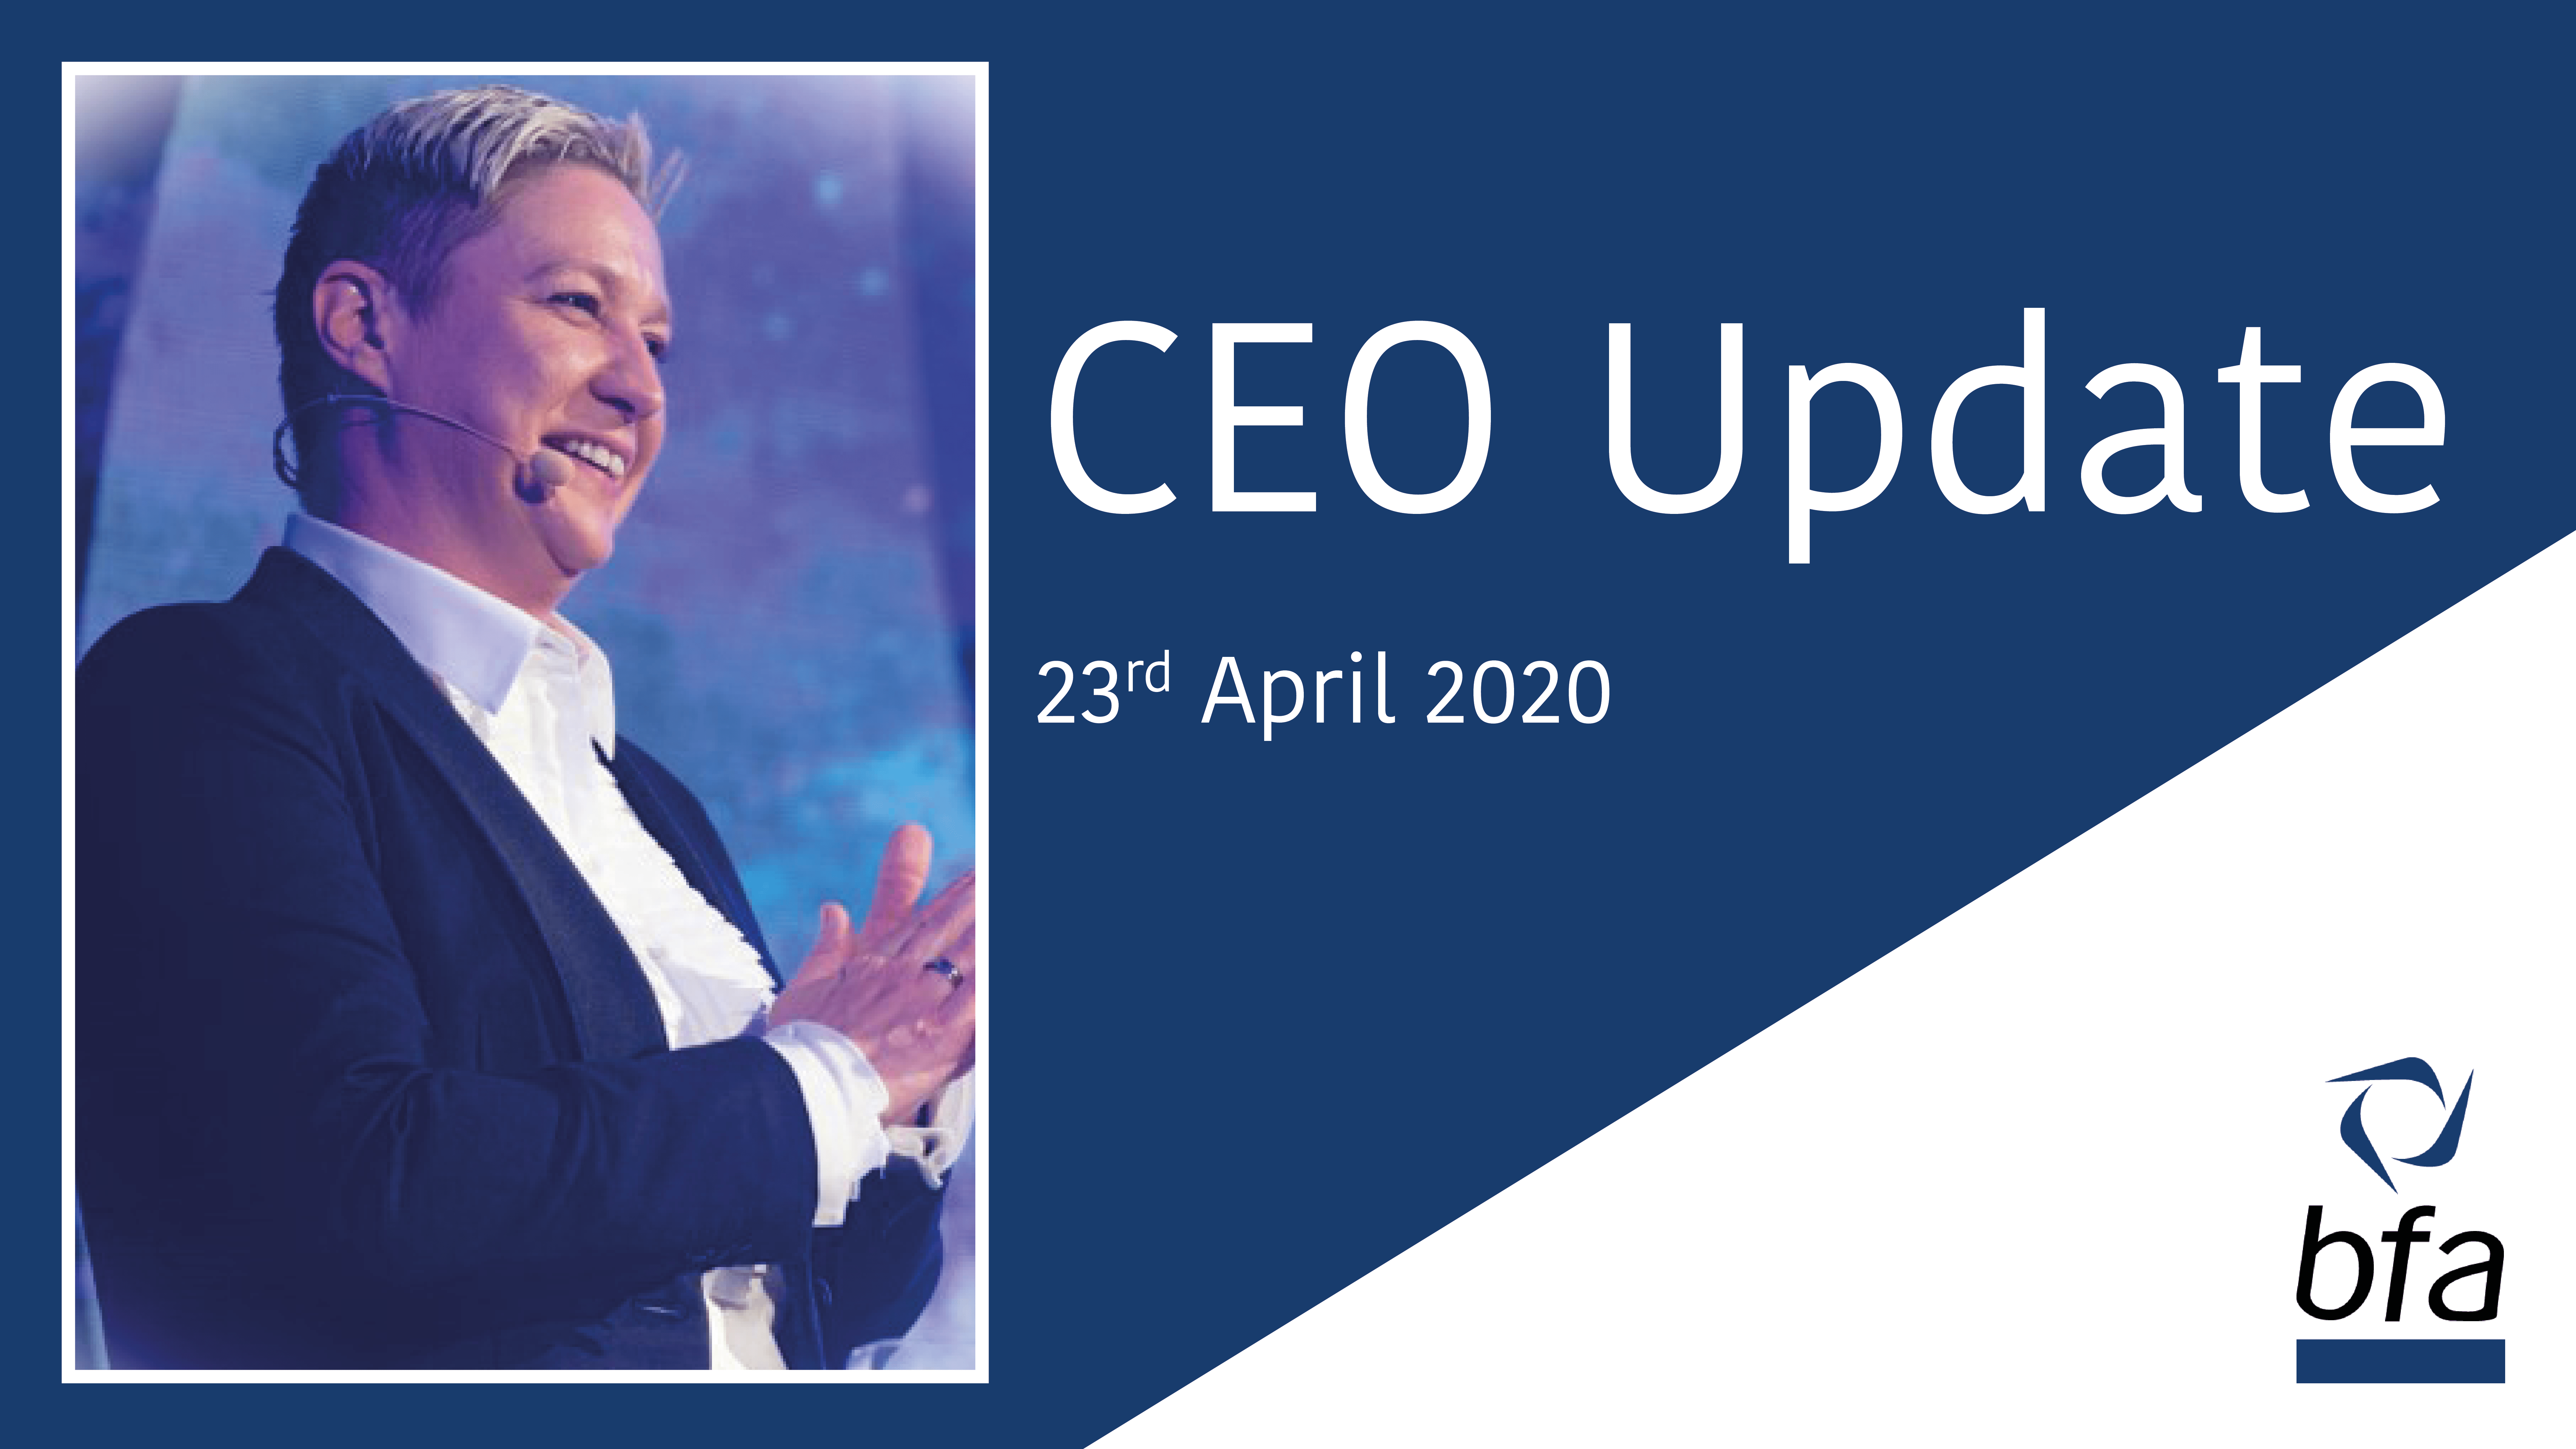 CEO Update, 23rd April